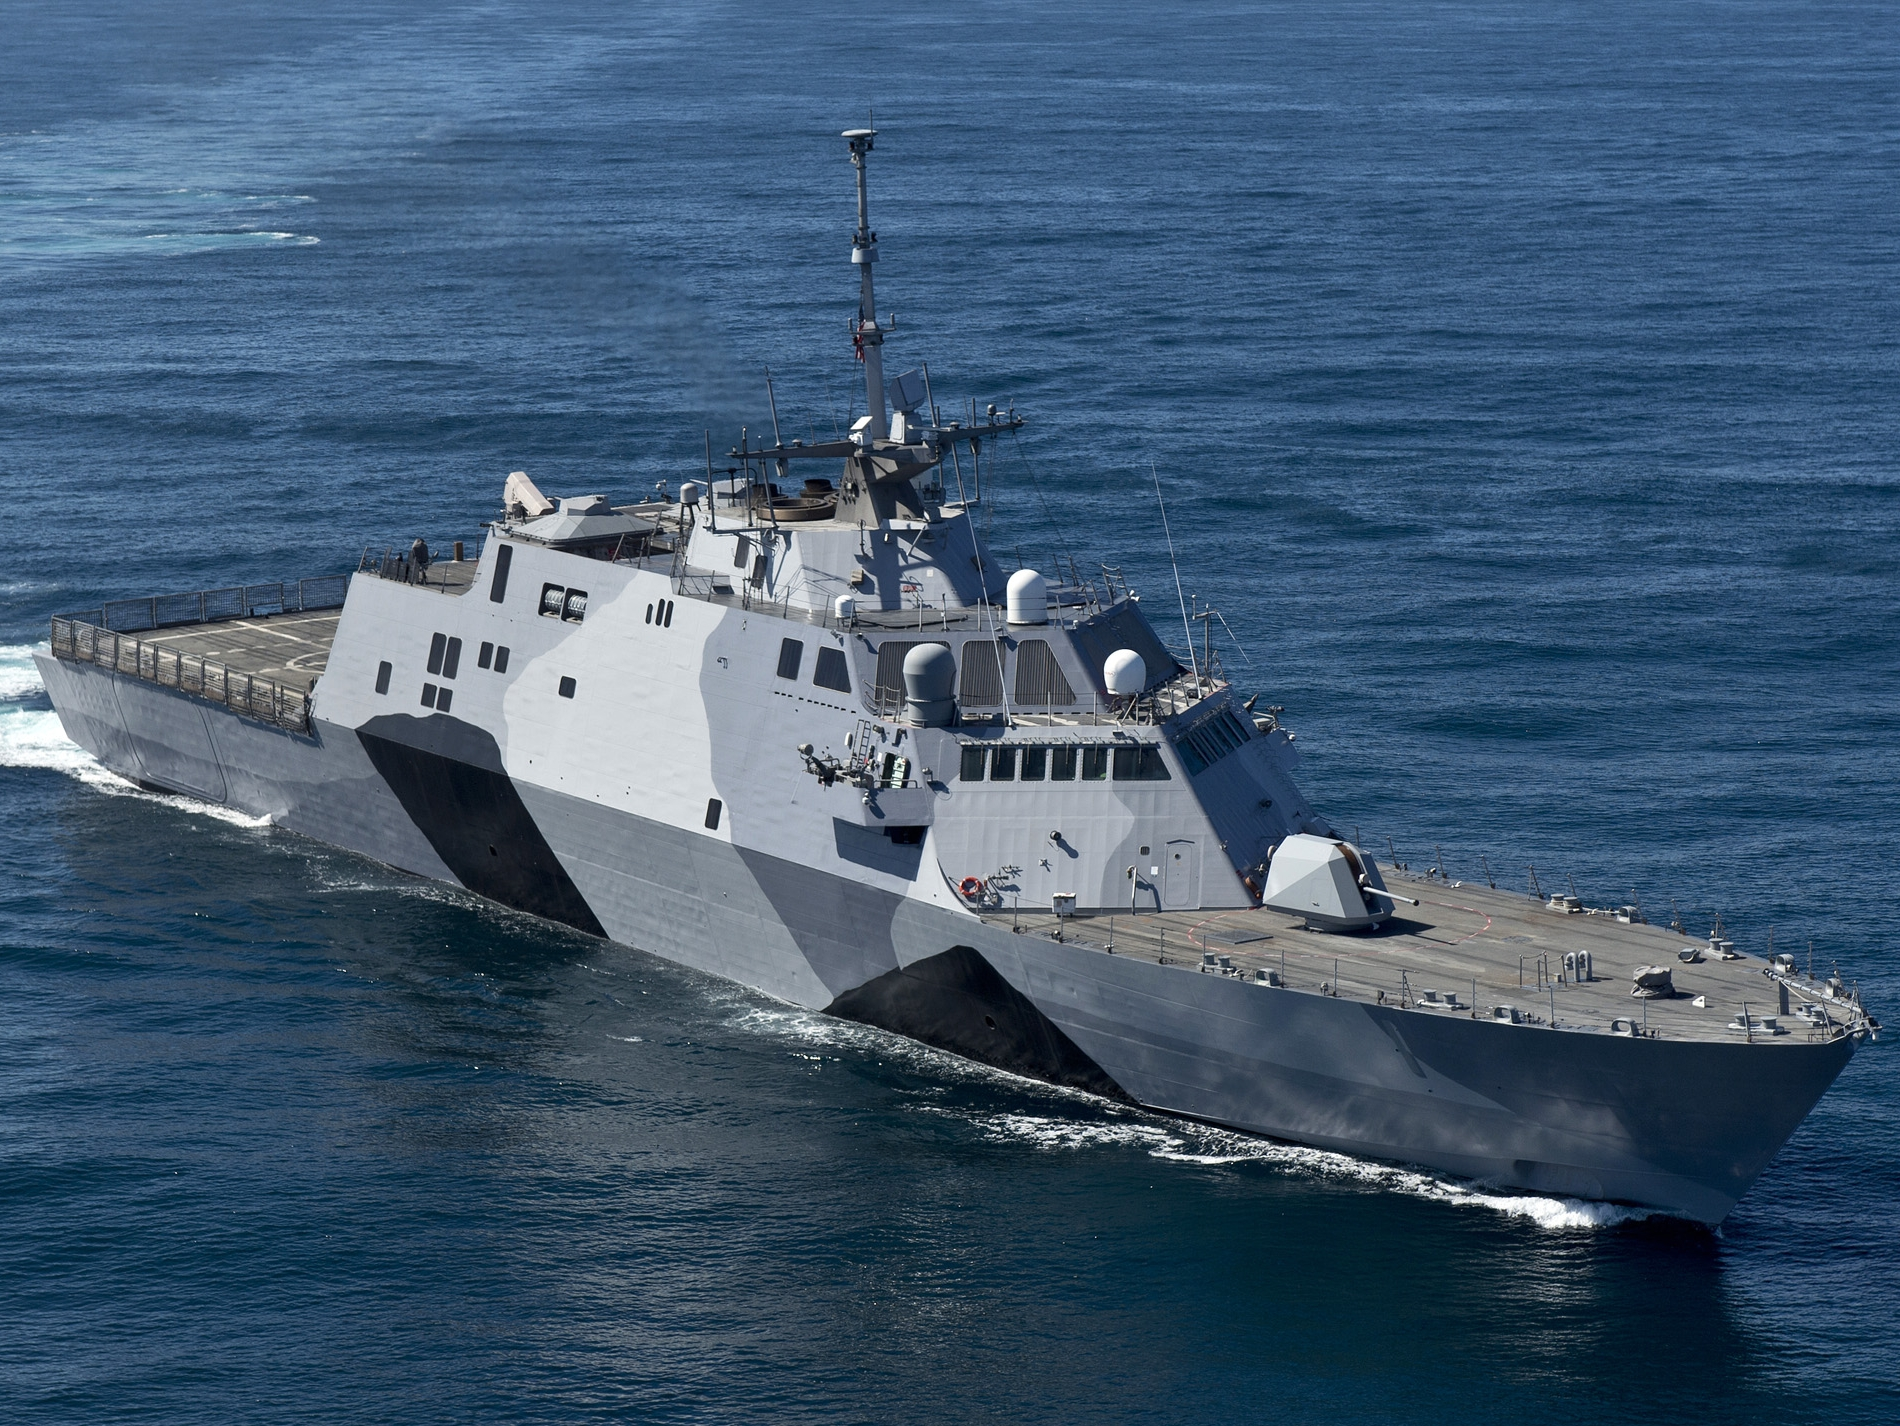 http://upload.wikimedia.org/wikipedia/commons/0/0a/USS-Freedom-130222-N-DR144-174-crop.jpg